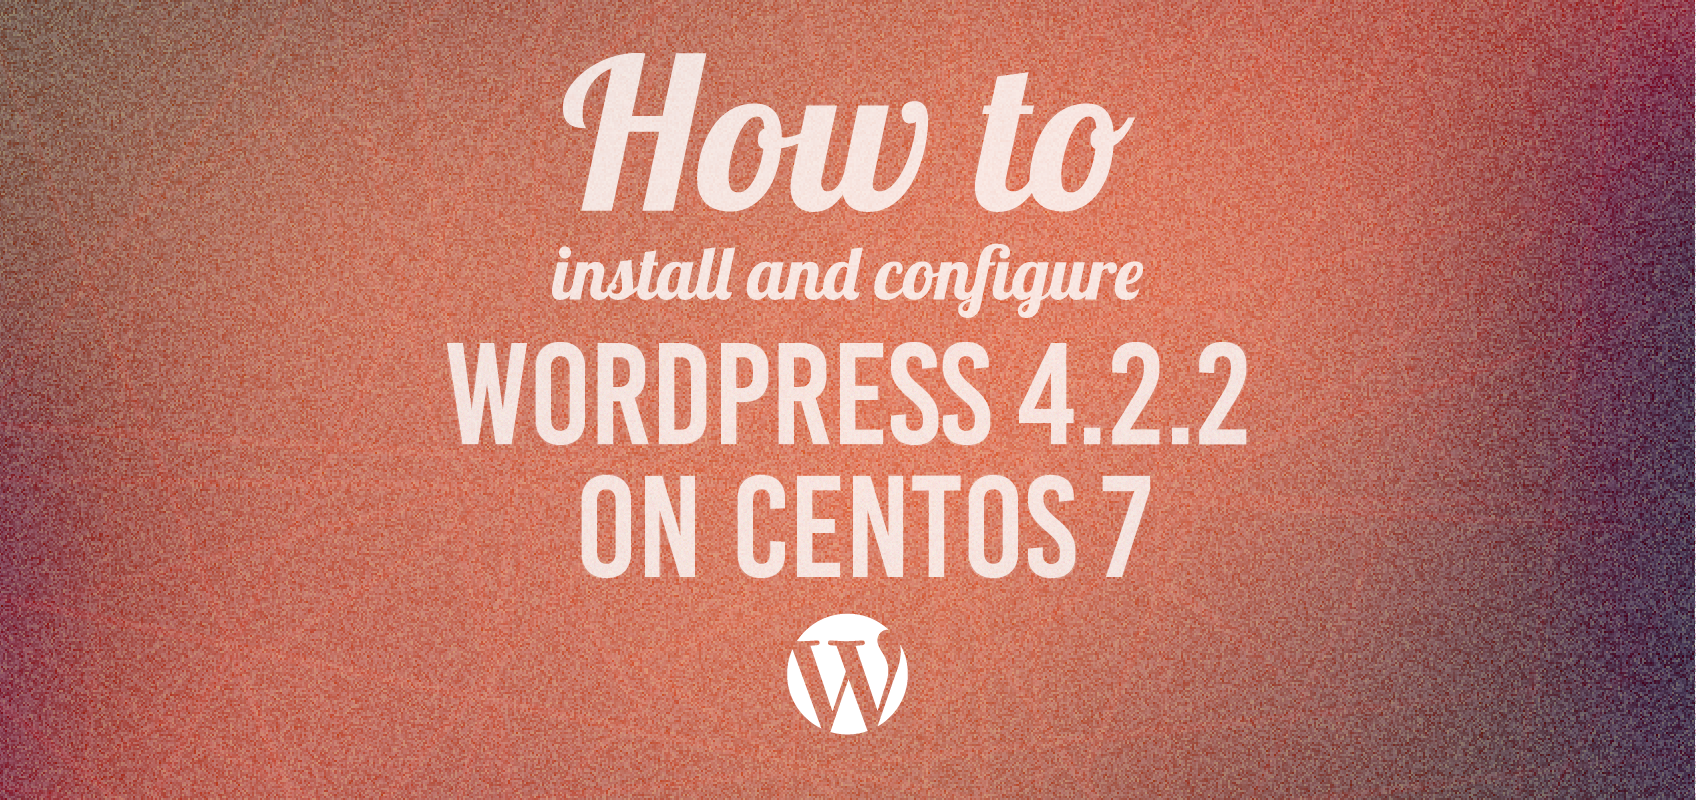 How to Install and Configure Wordpress on Centos on Gradient Background